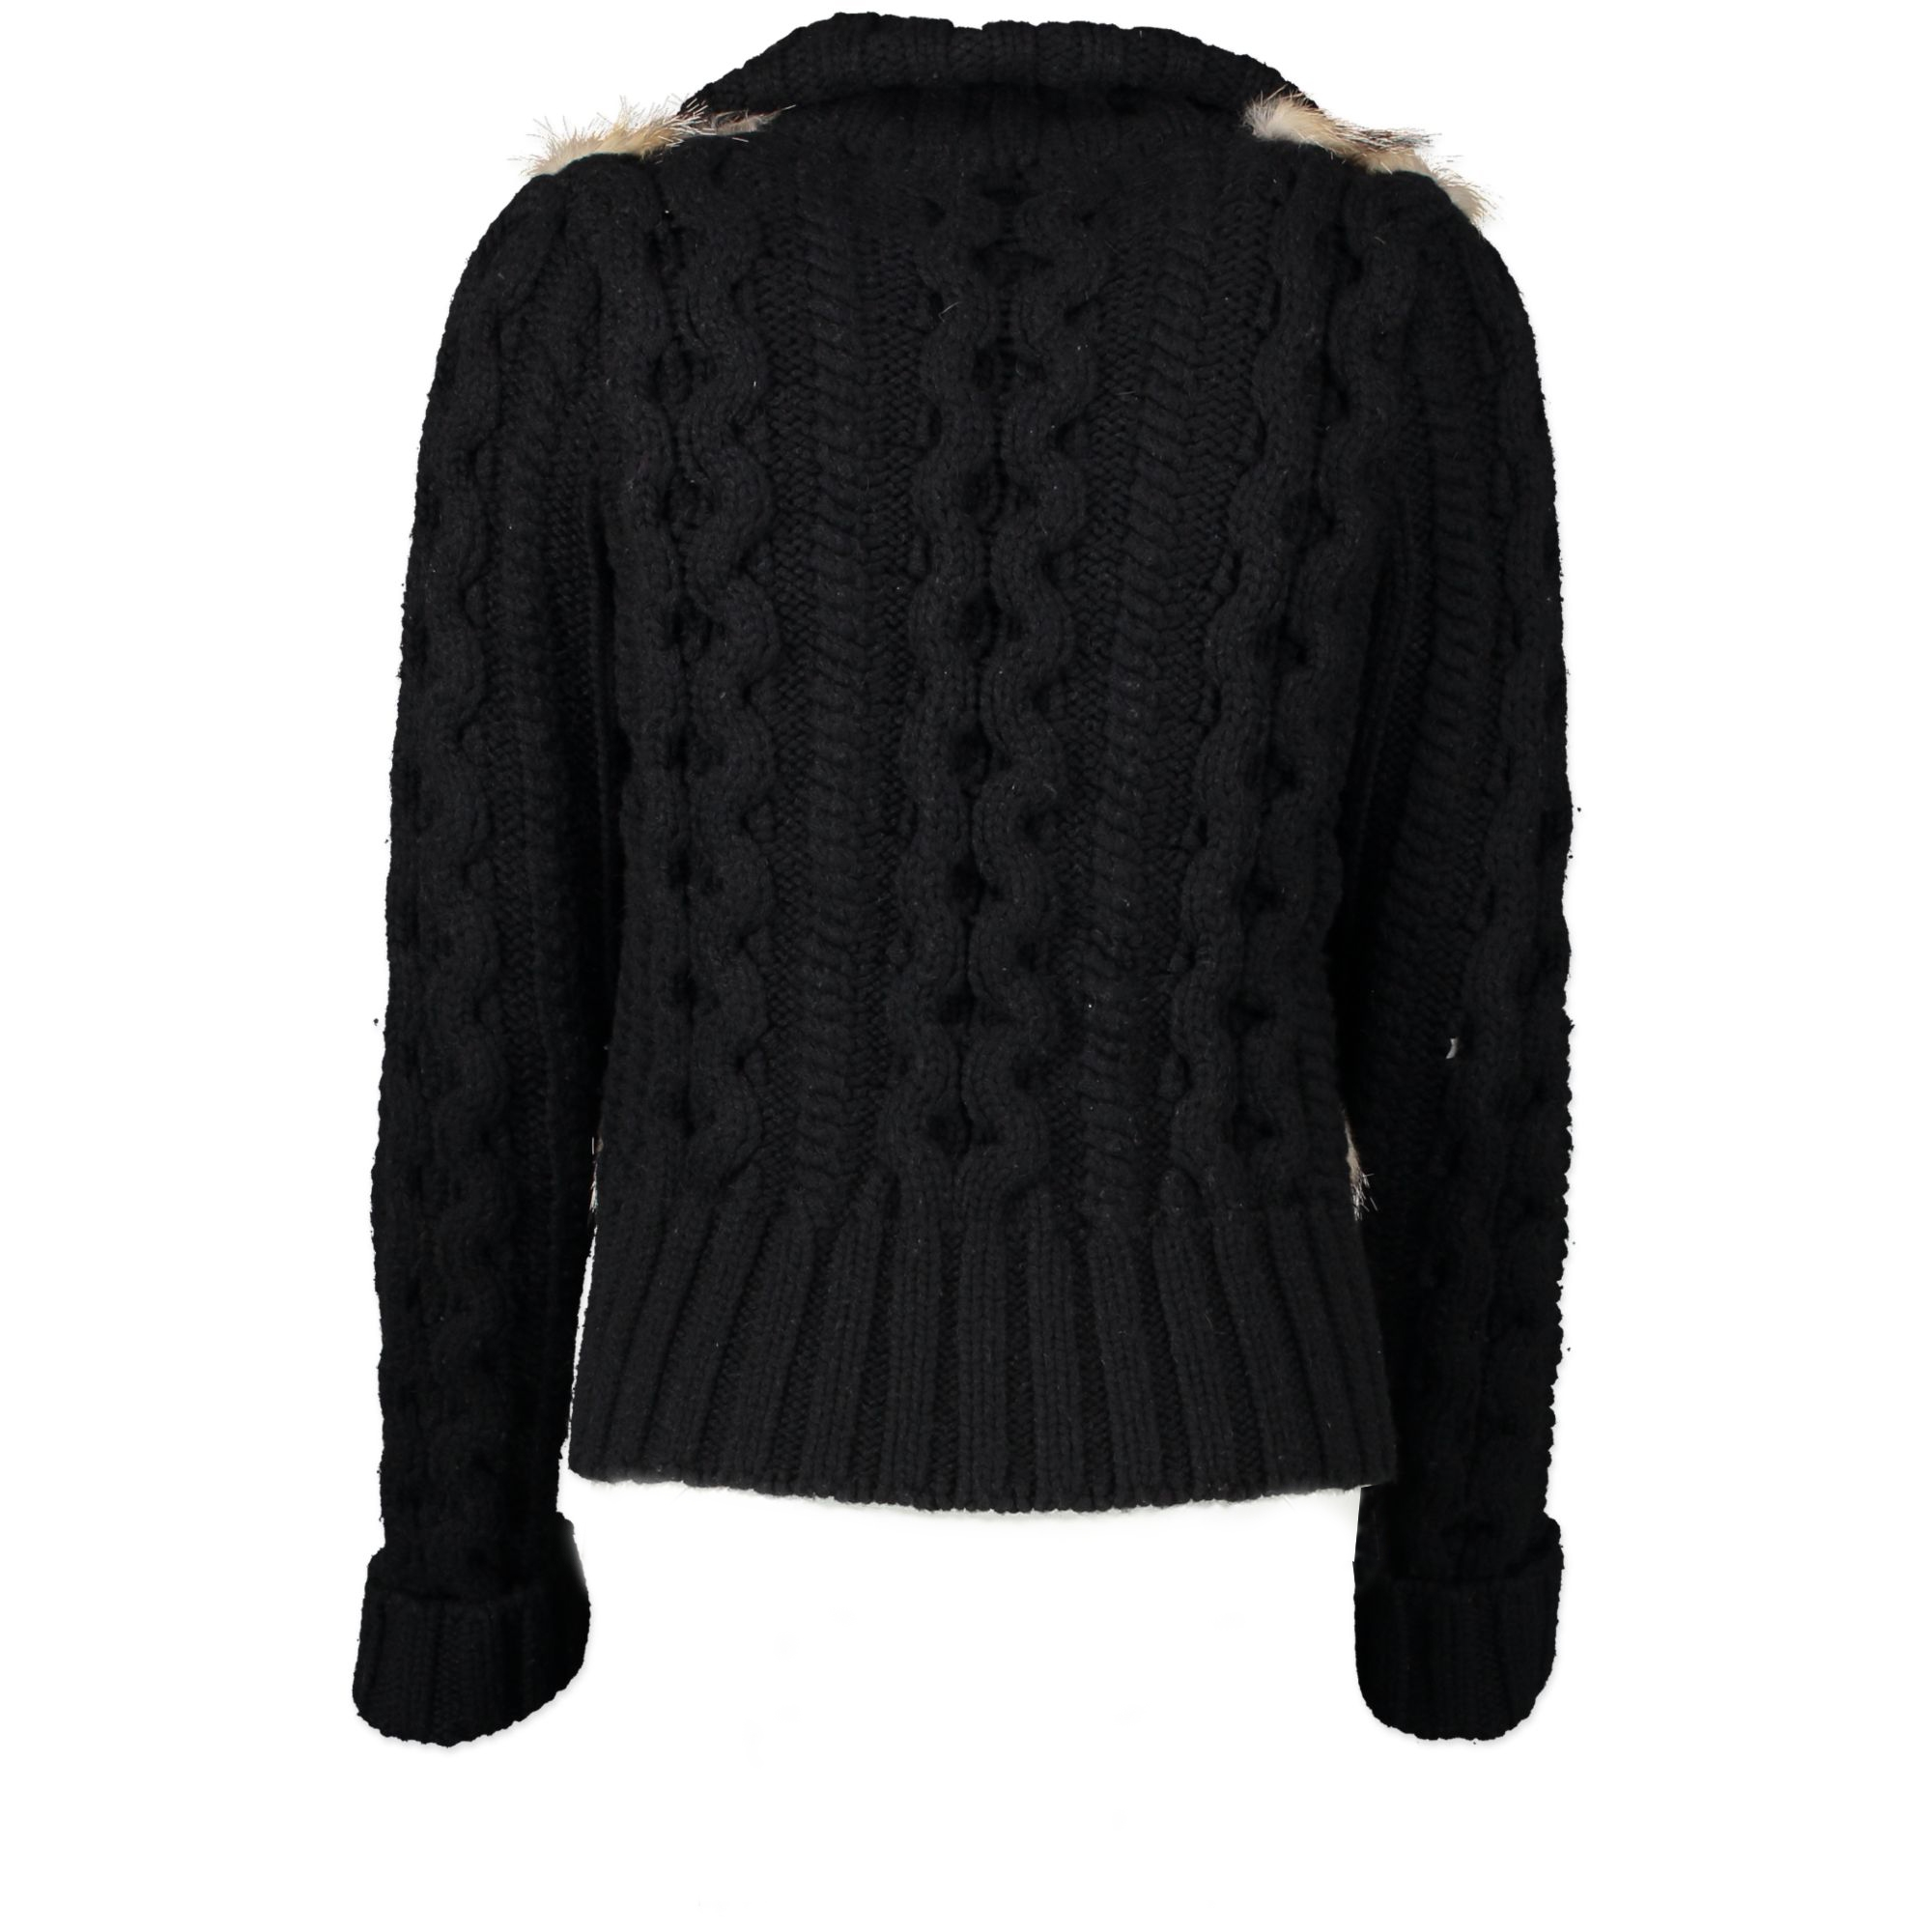 We buy and sell your authentic Gucci Black Fur Cable Knit Sweater Jacket